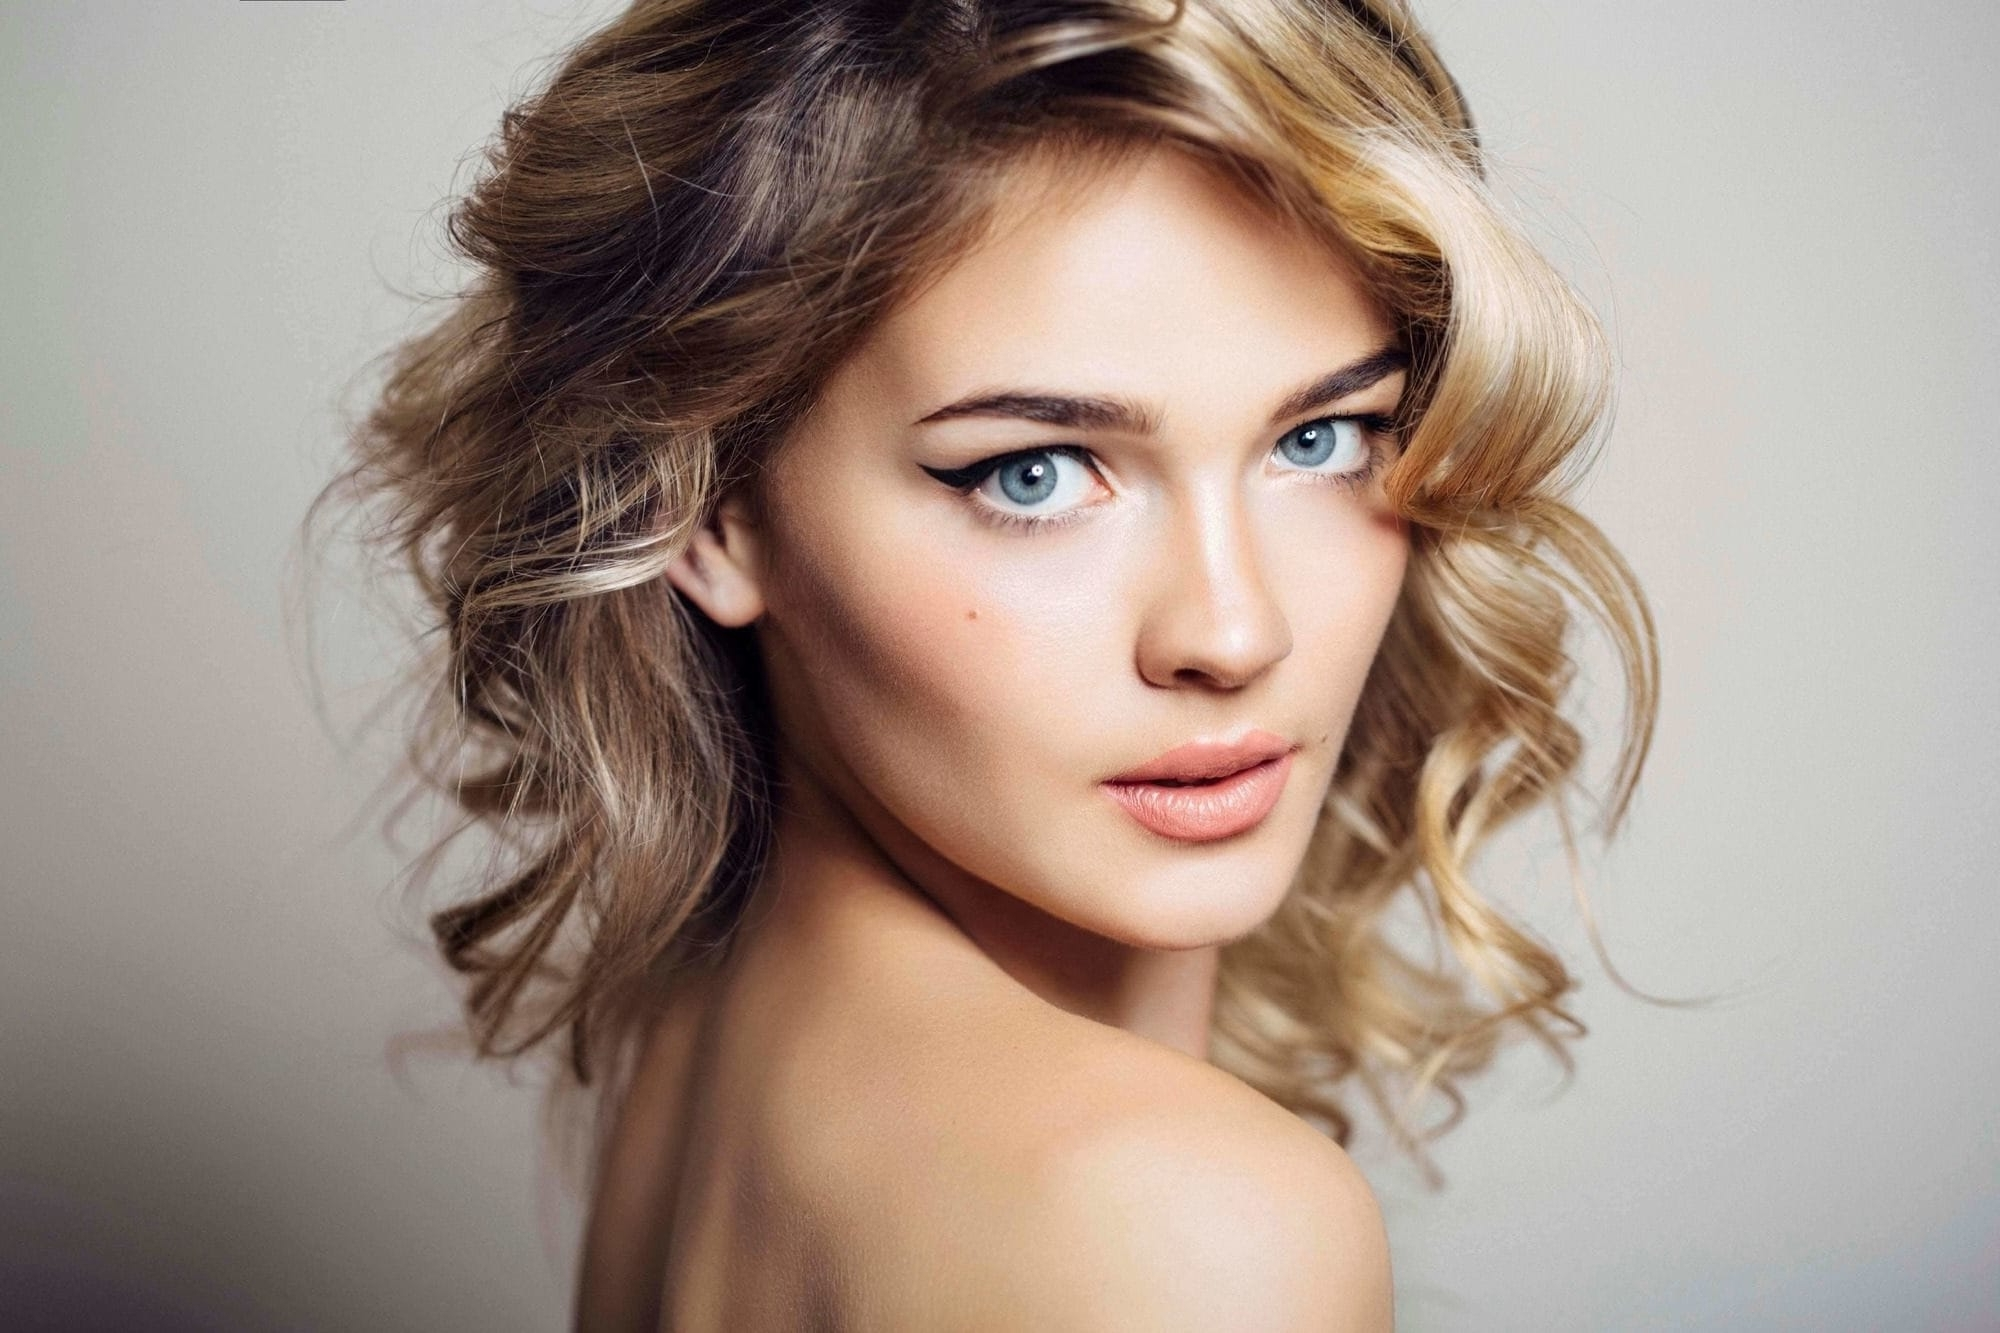 Famous Dark Roots Blonde Hairstyles With Honey Highlights Intended For Blonde Hair With Dark Roots: Stylish Ways To Wear This Hair Trend (View 15 of 20)